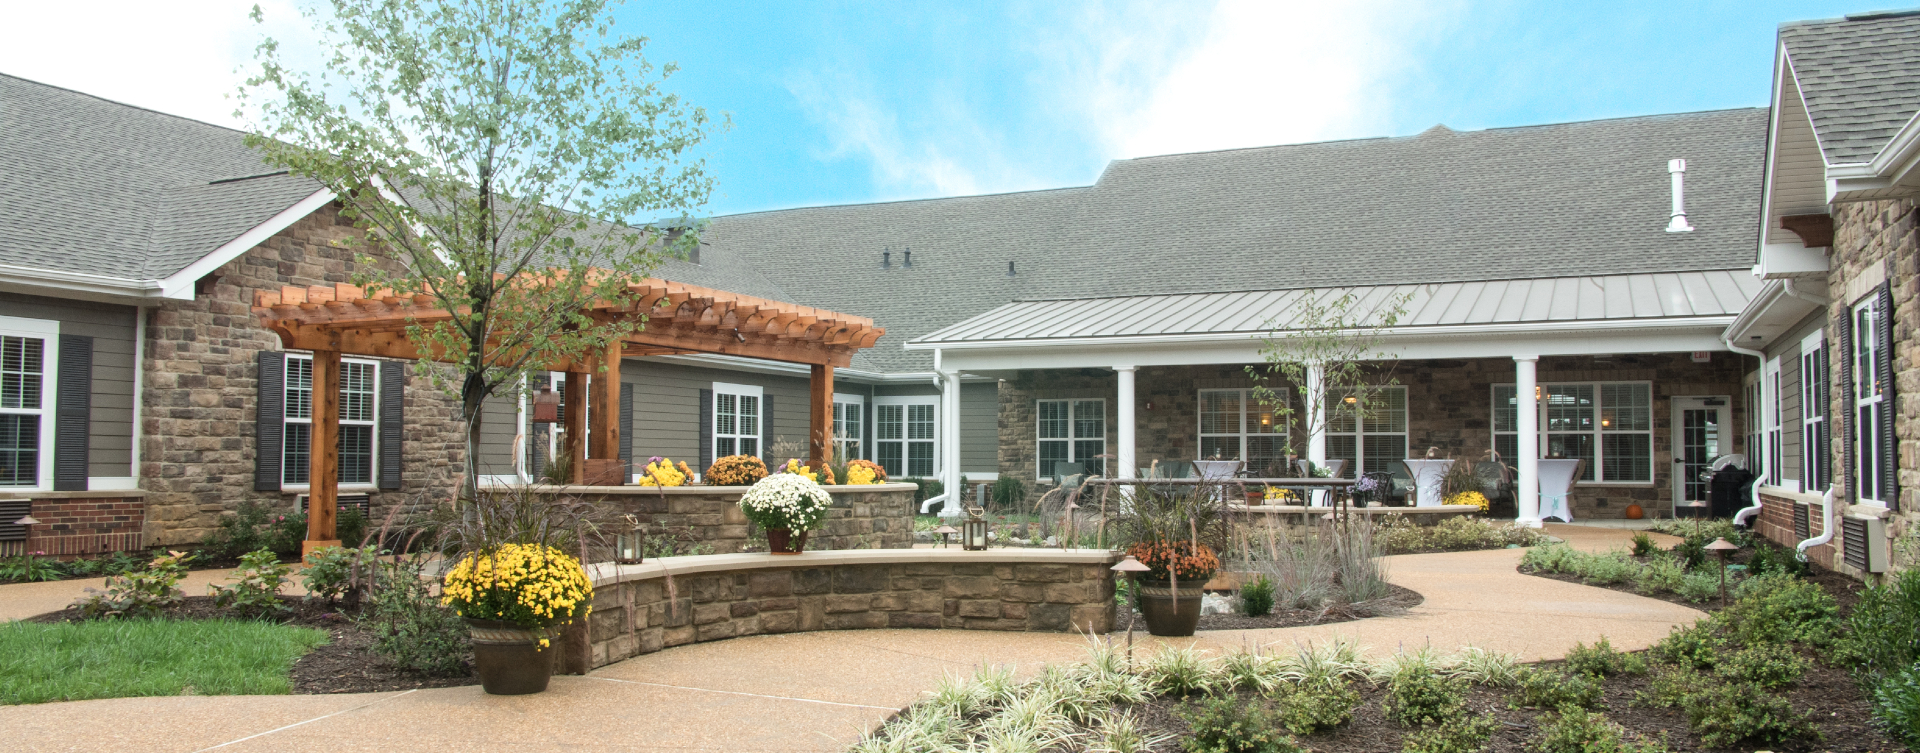 Enjoy bird watching, gardening and barbecuing in our courtyard at Bickford of Spotsylvania